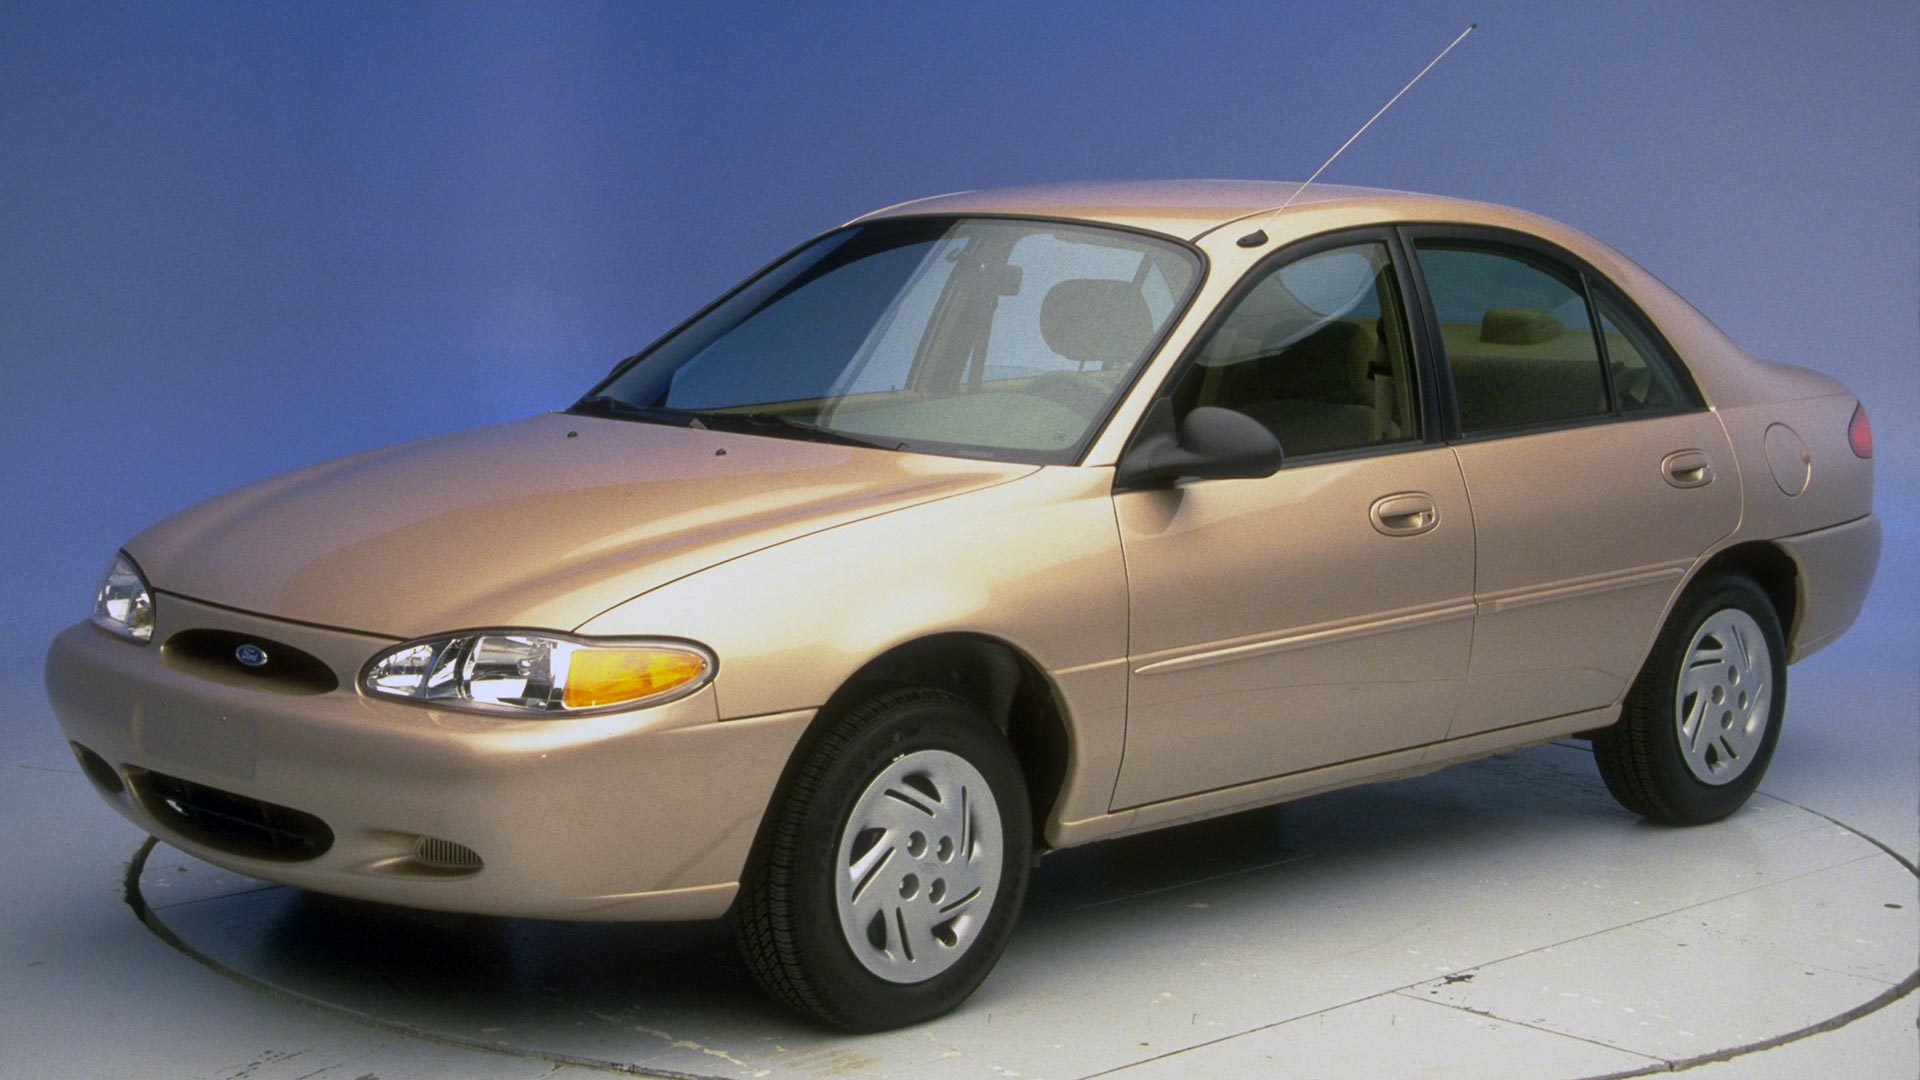 1999 Ford Escort 4-door sedan